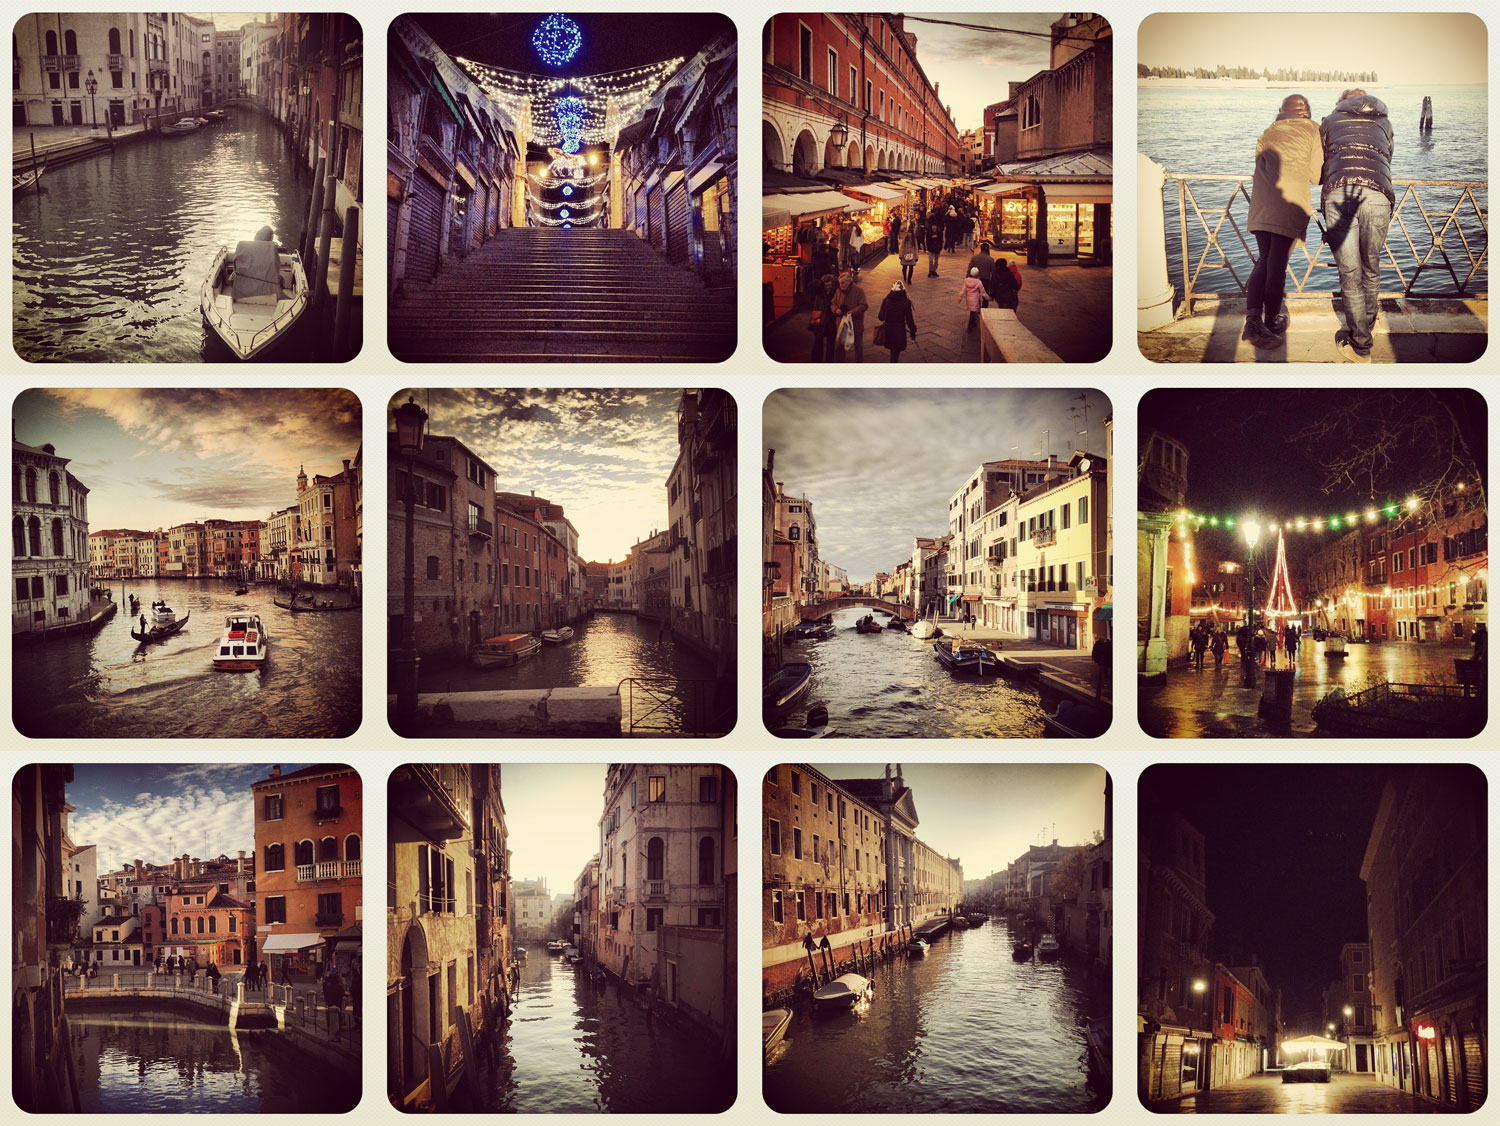 A few snapshots taken during my stay in Venice